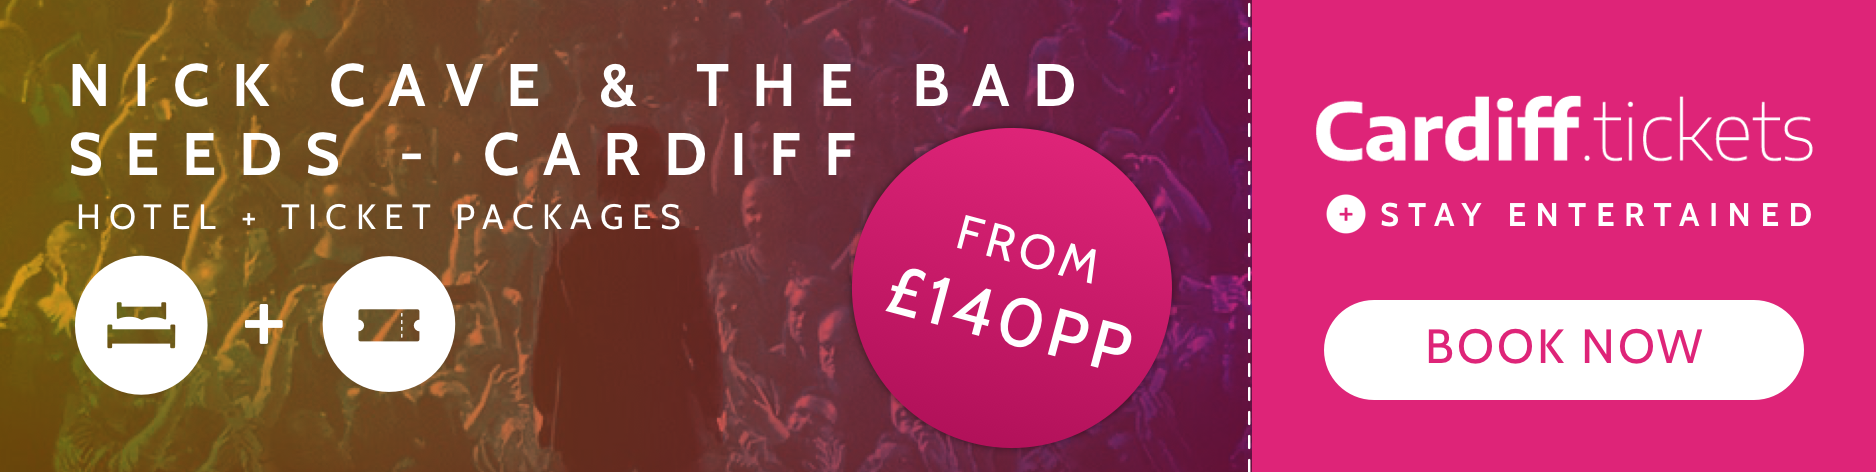 Nick Cave & the Bad Seeds- Cardiff tickets and hotel package